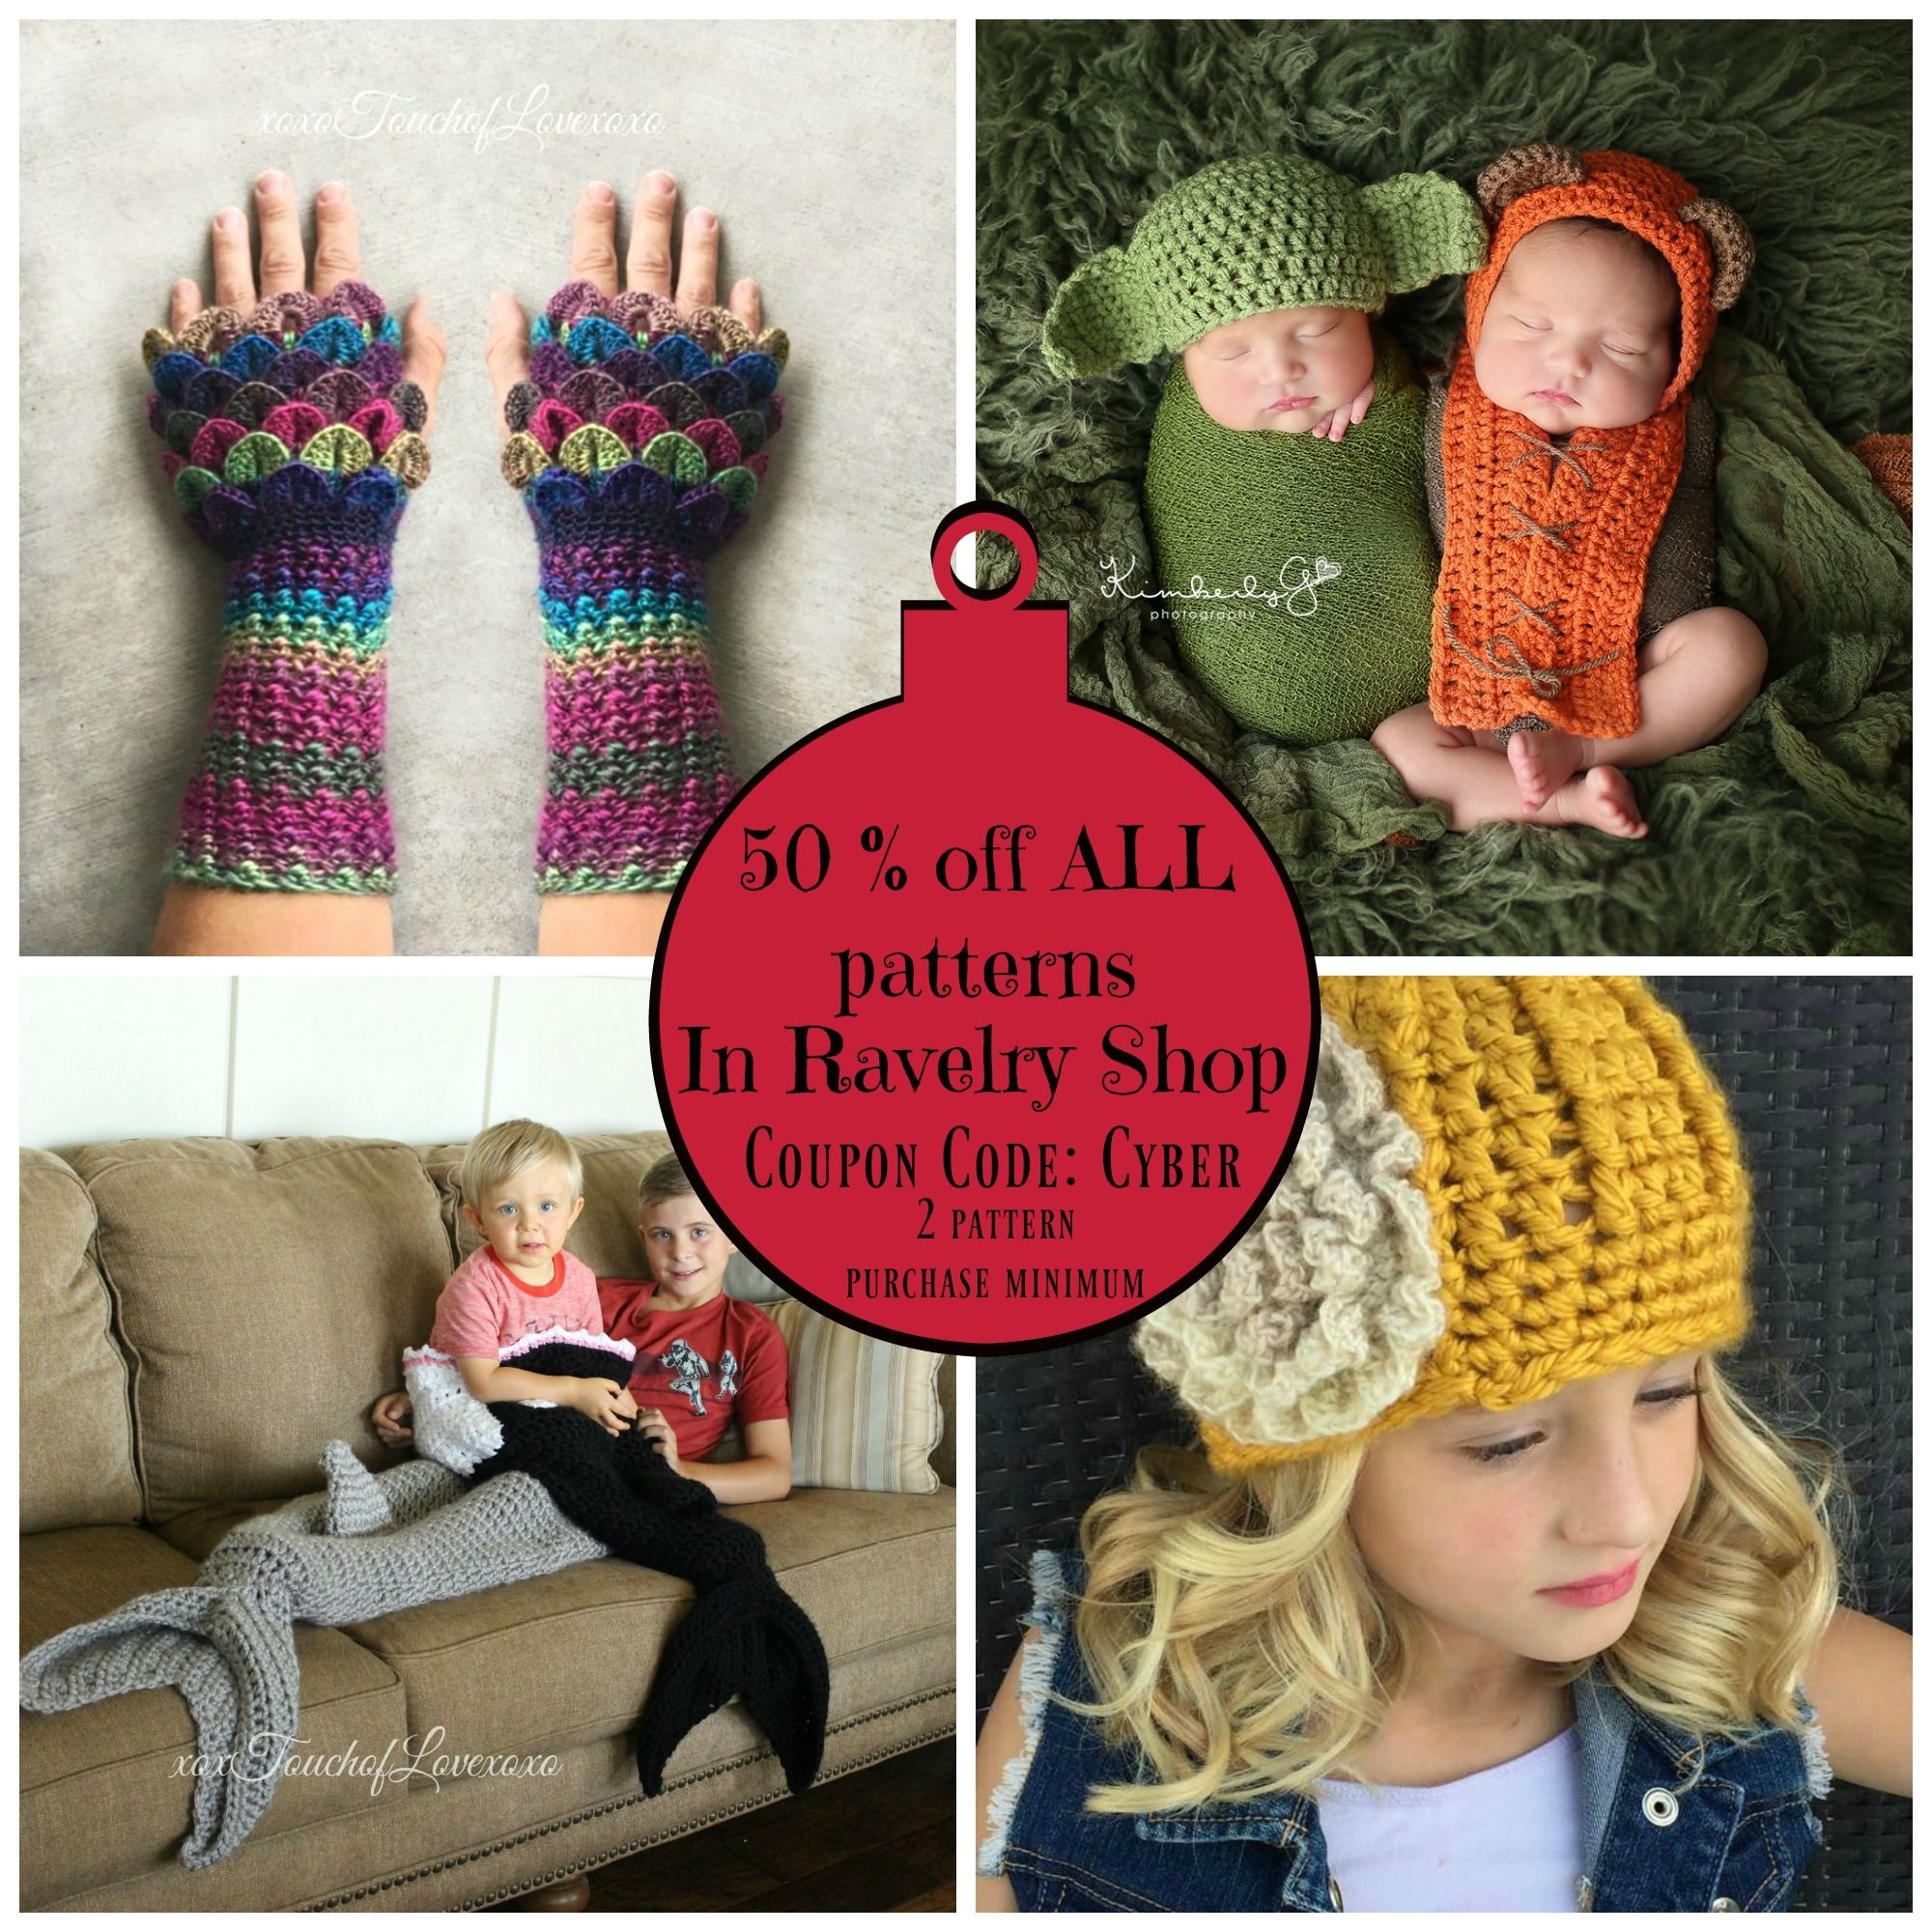 50 off all crochet patterns in ravelry shop httpravelry 50 off all crochet patterns in ravelry shop httpravelry fandeluxe Images